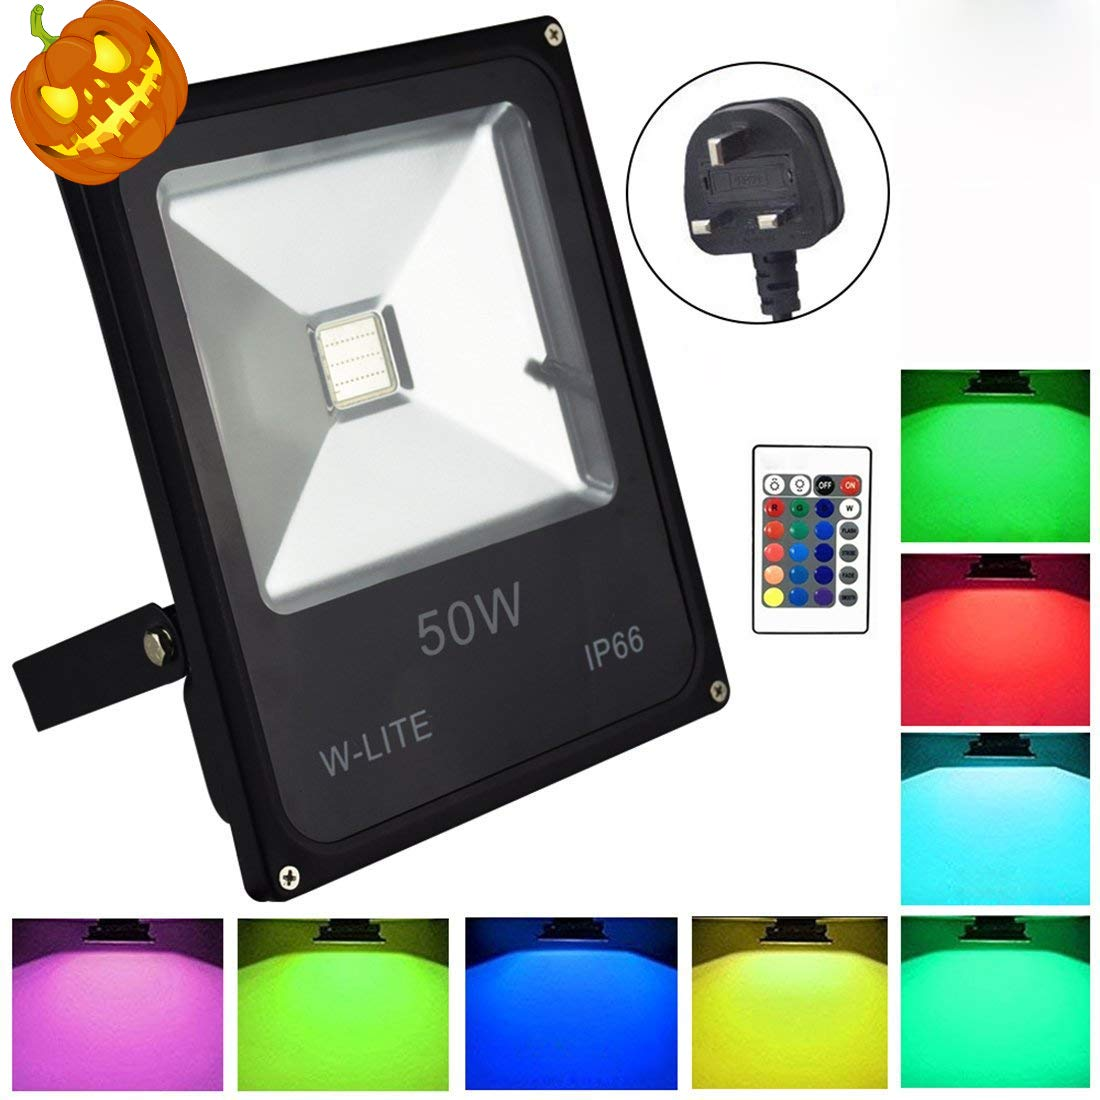 Coloured Changing Floodlight for Halloween Remote Control,Equate to 200W Halogen light Dimmable 16 Colour /& 4 Modes Waterproof IP66 Party. 50W RGB Led Floodlight Outdoor No Plug